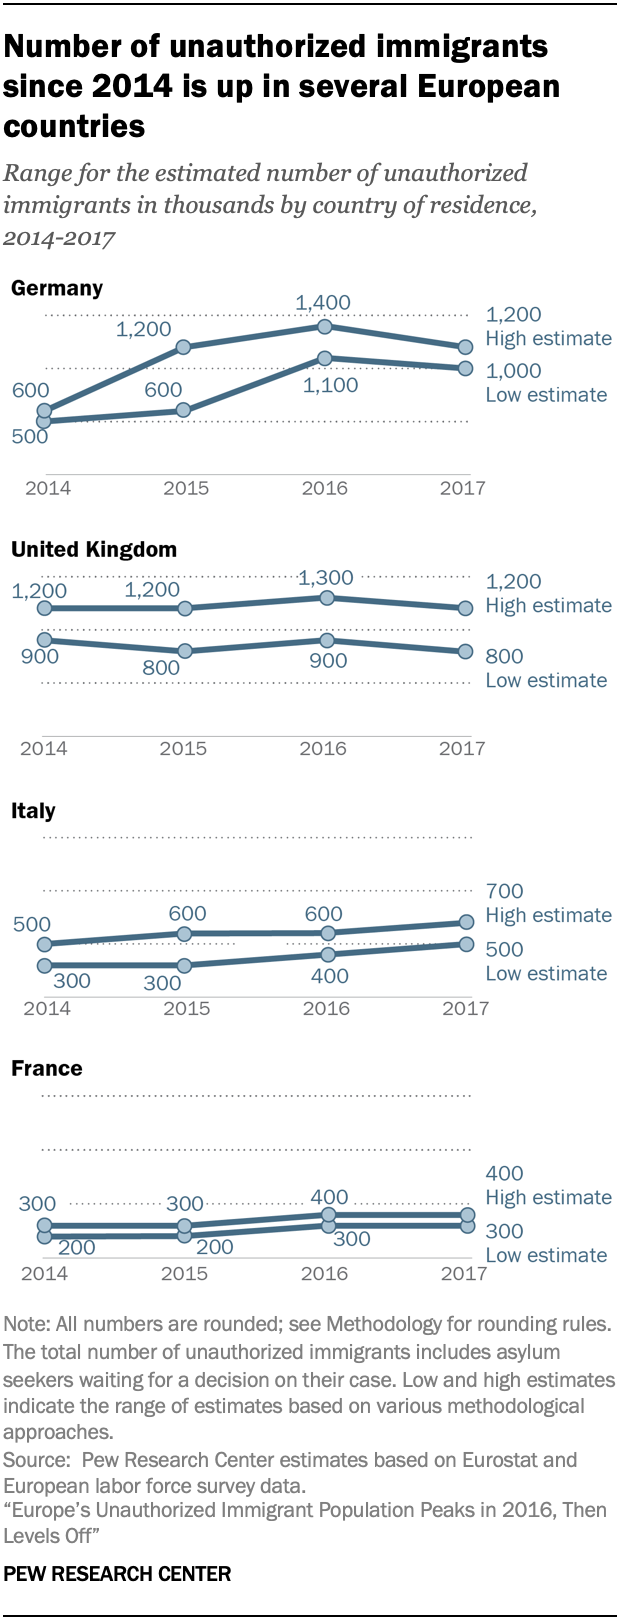 A chart showing the number of unauthorized immigrants since 2014 is up in several European countries